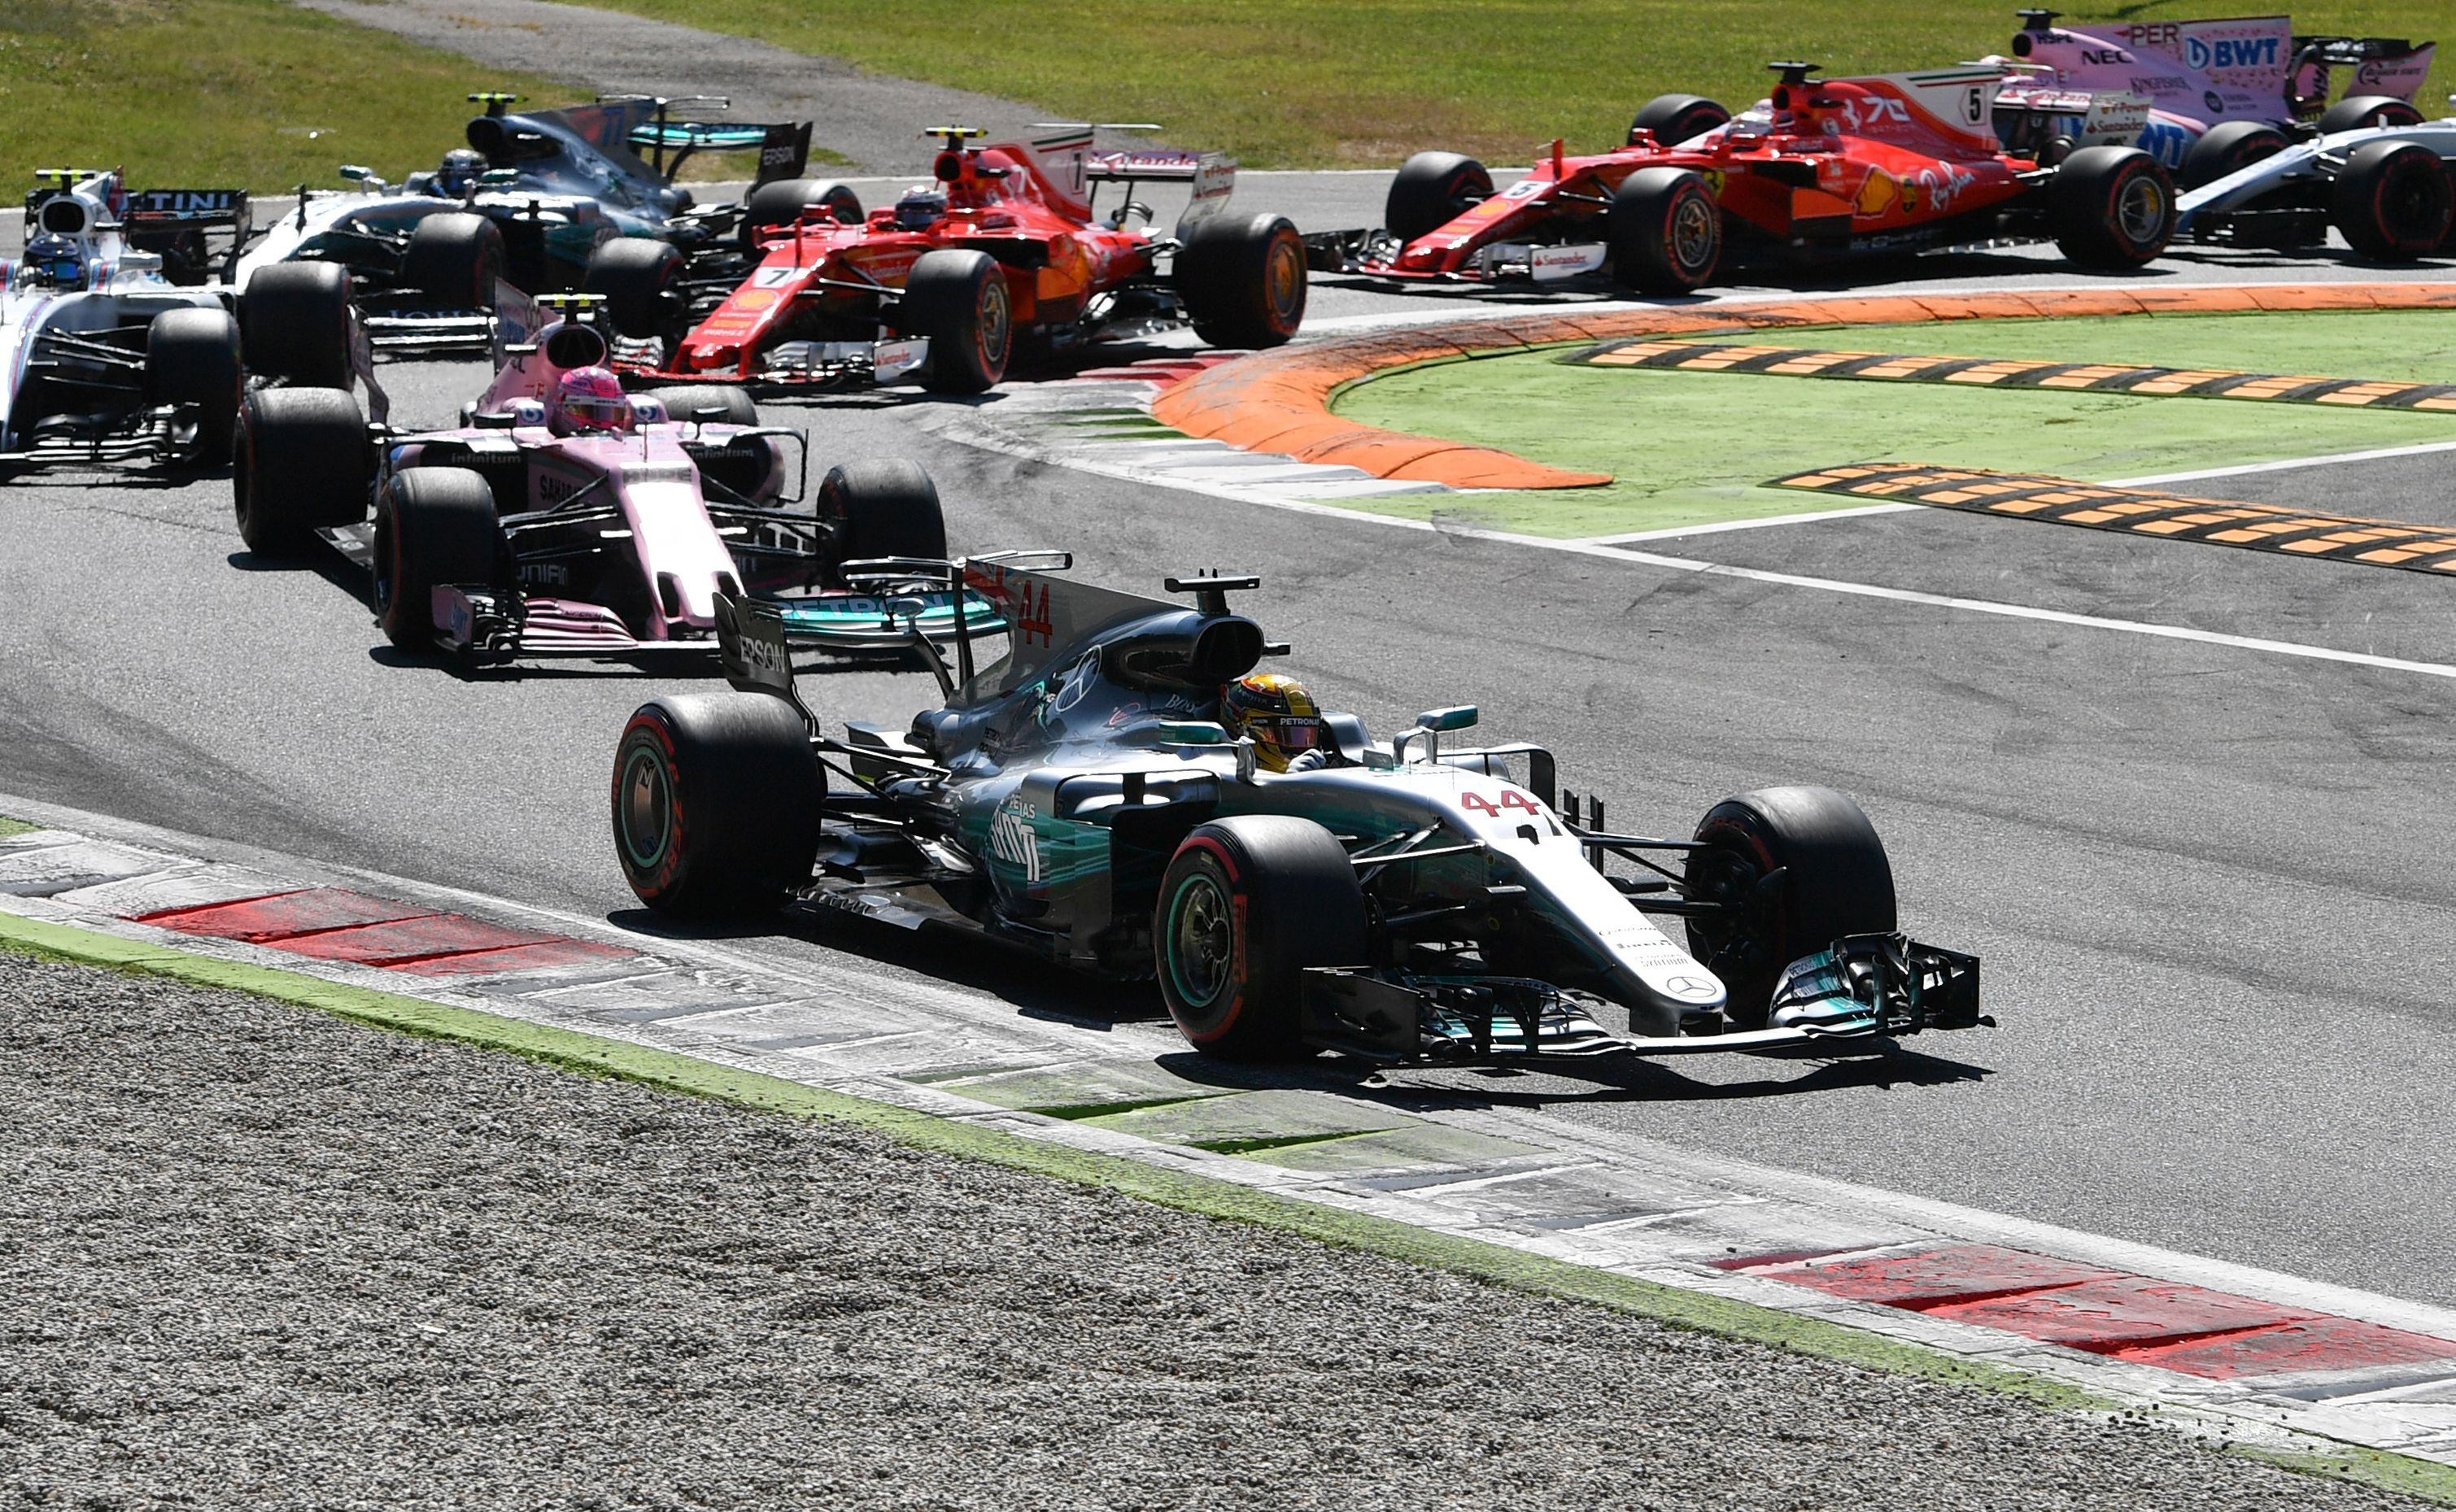 Mercedes' British driver Lewis Hamilton takes the lead during the Italian Formula One Grand Prix at the Autodromo Nazionale circuit in Monza on September 3, 2017.